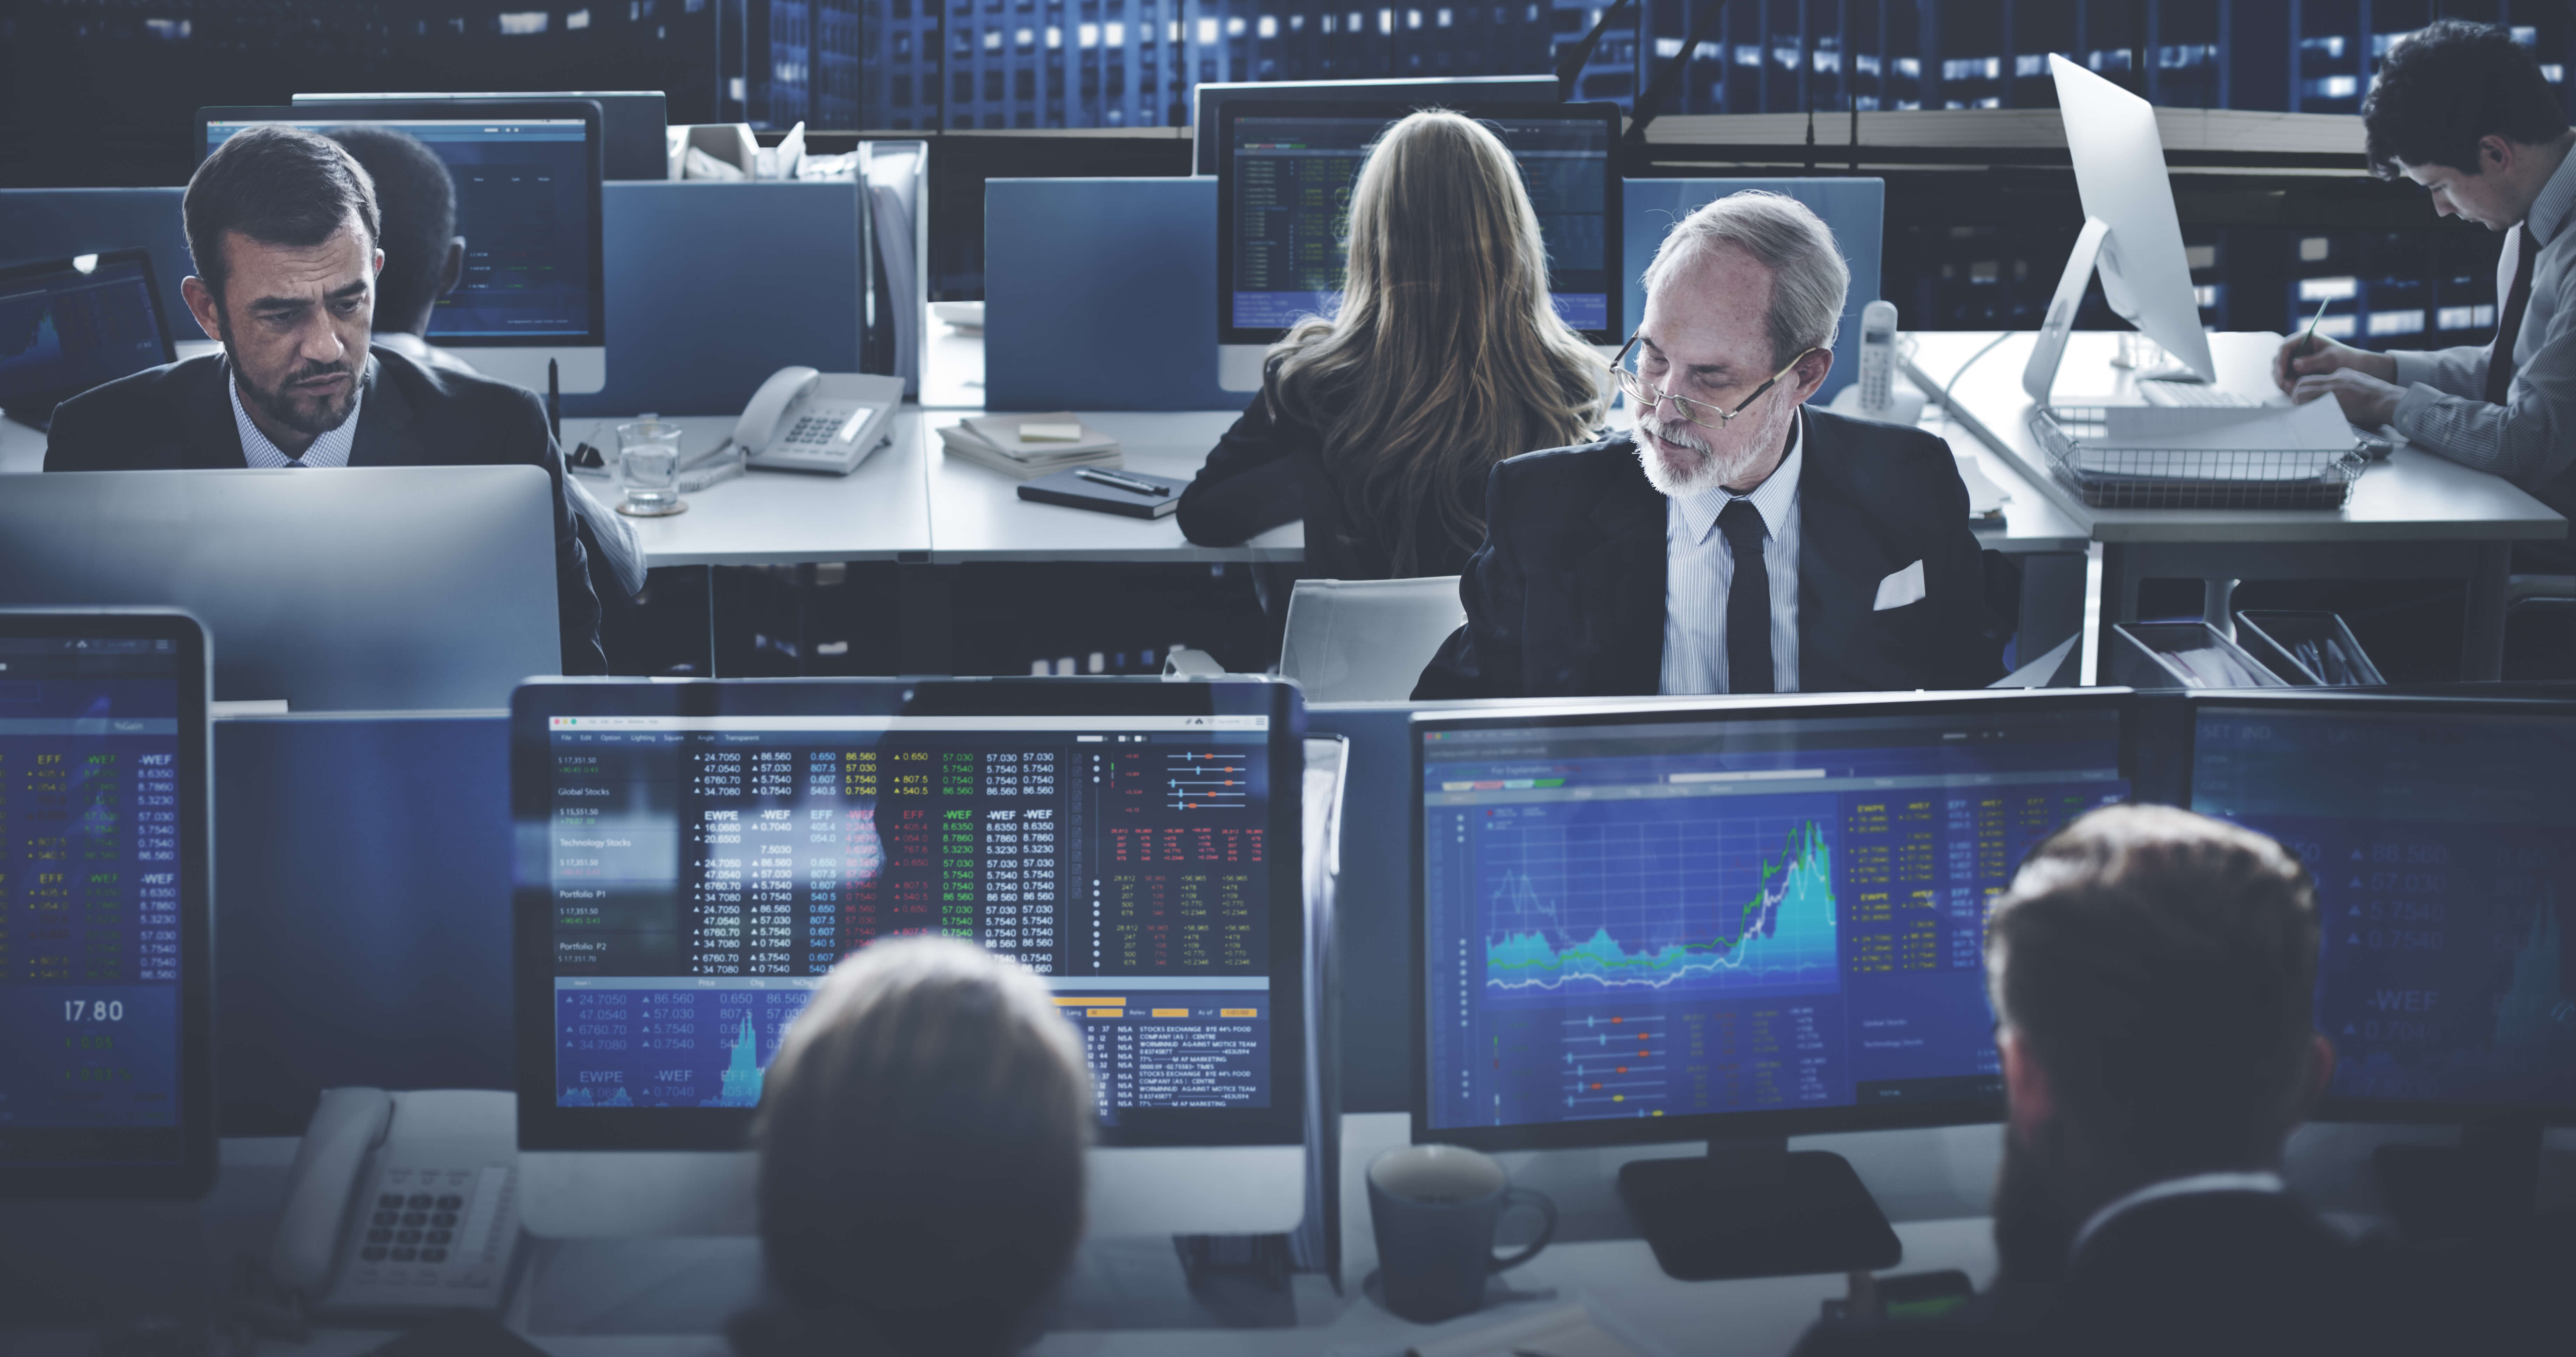 The financial industry has embraced digital transformation and along with it, innovative tech-driven initiatives to enhance customer experience, improve efficiency and reduce cost, all the while complying with regulatory oversights. Source: Shutterstock